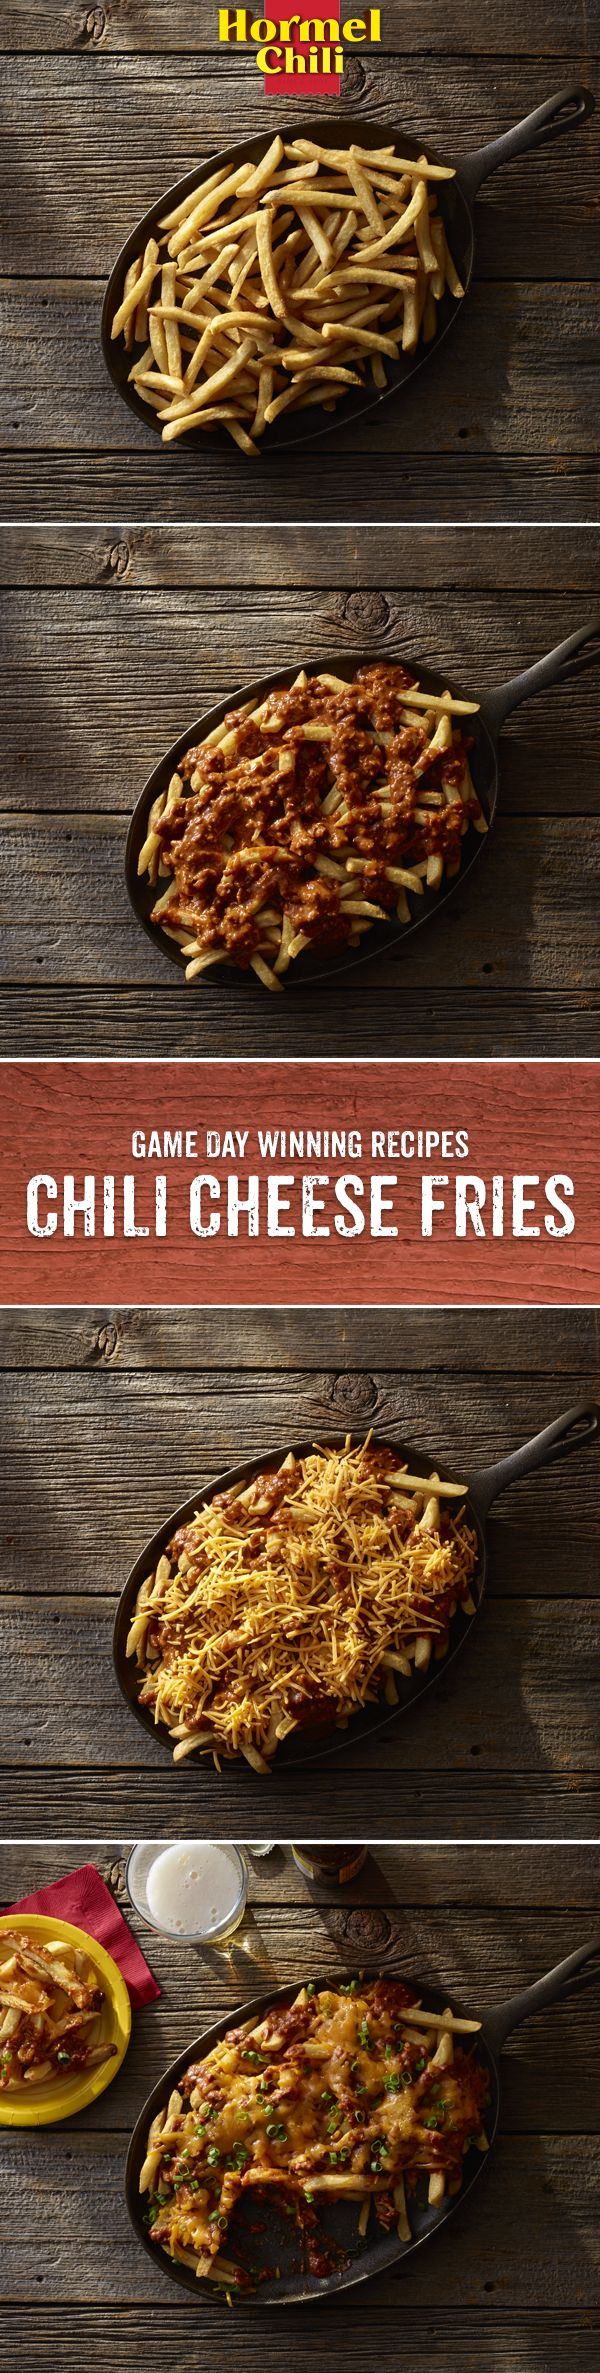 Chili Nation: Up your fan-hosting game using HORMEL® Chili-topped fries.   chili | chili recipes | easy chili recipes | chili cheese fries